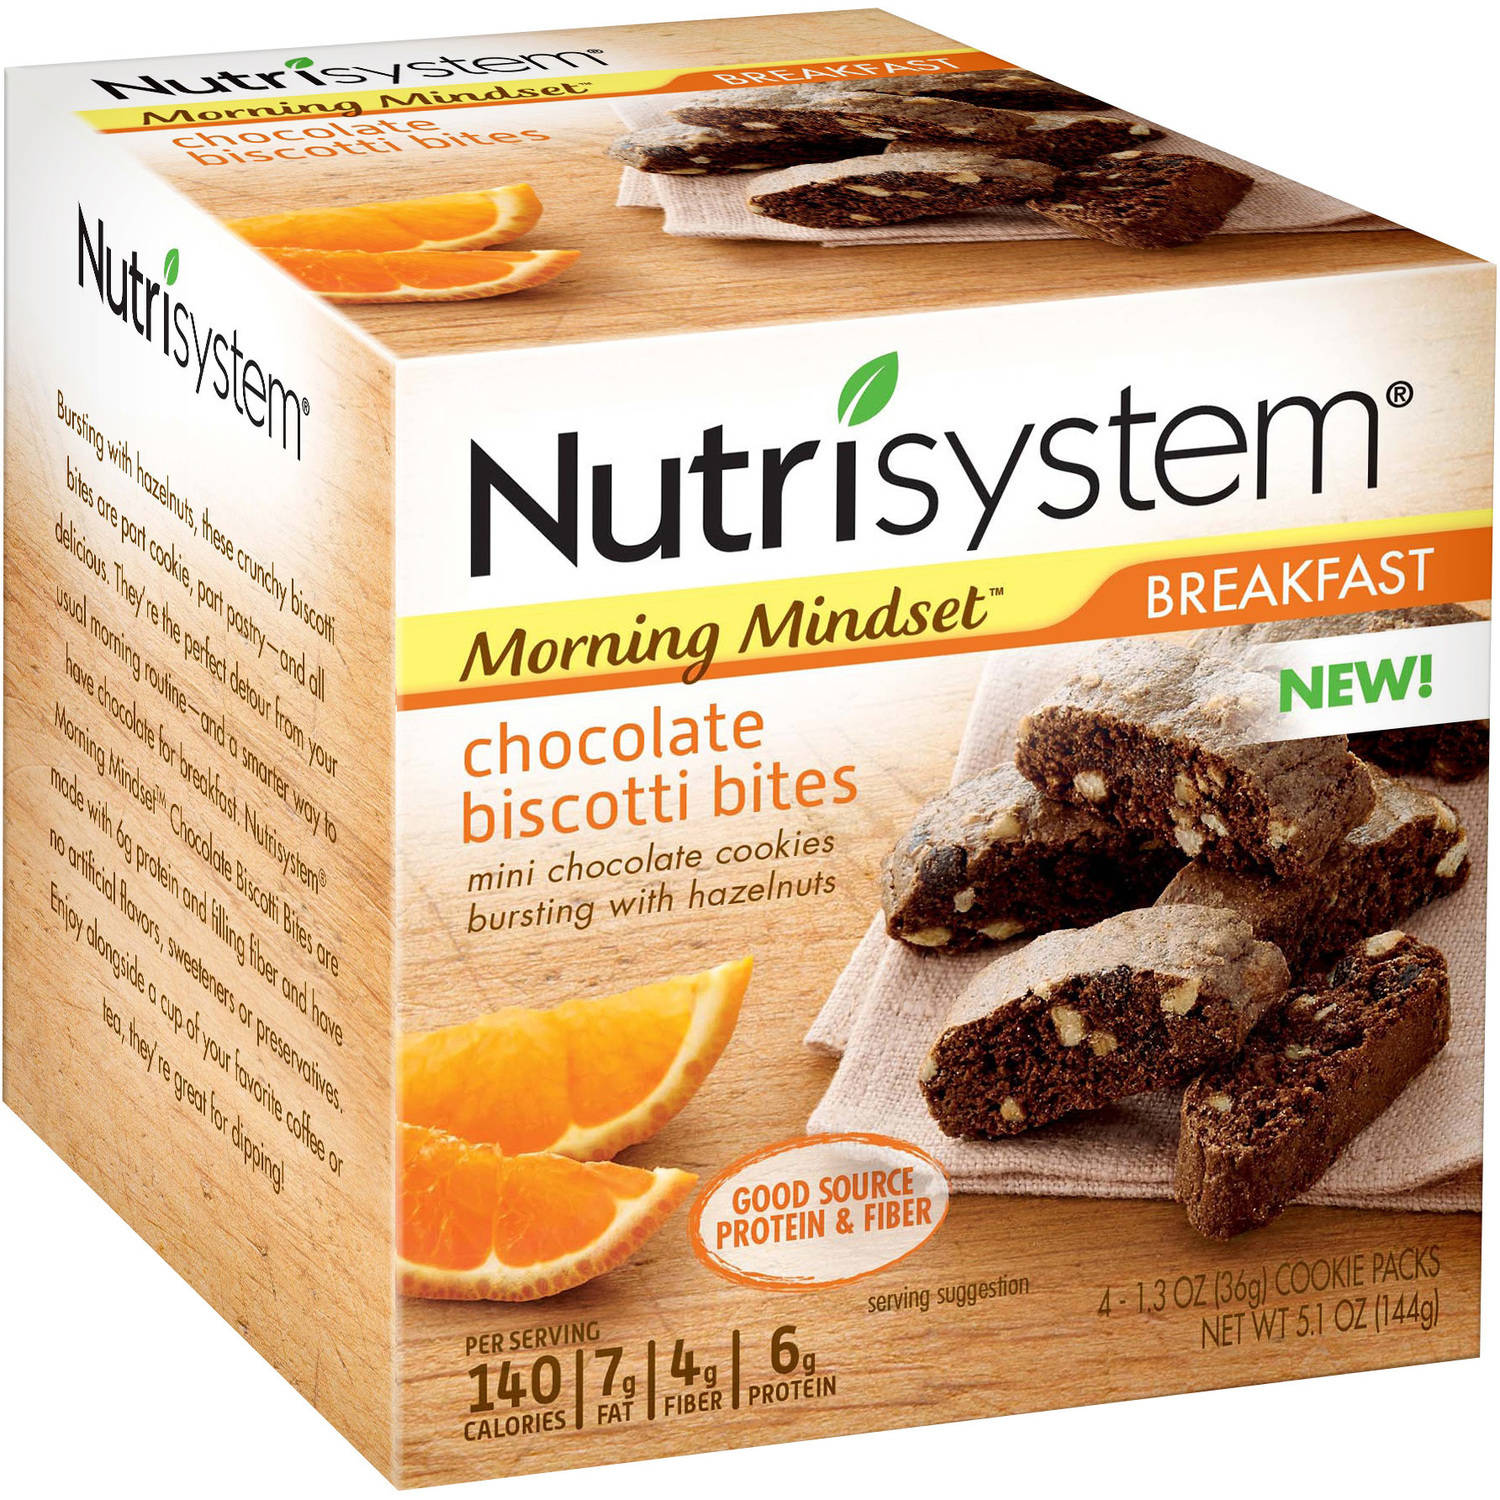 Nutrisystem Morning Mindset Breakfast Chocolate Biscotti Bites, 1.3 oz, 4 count by